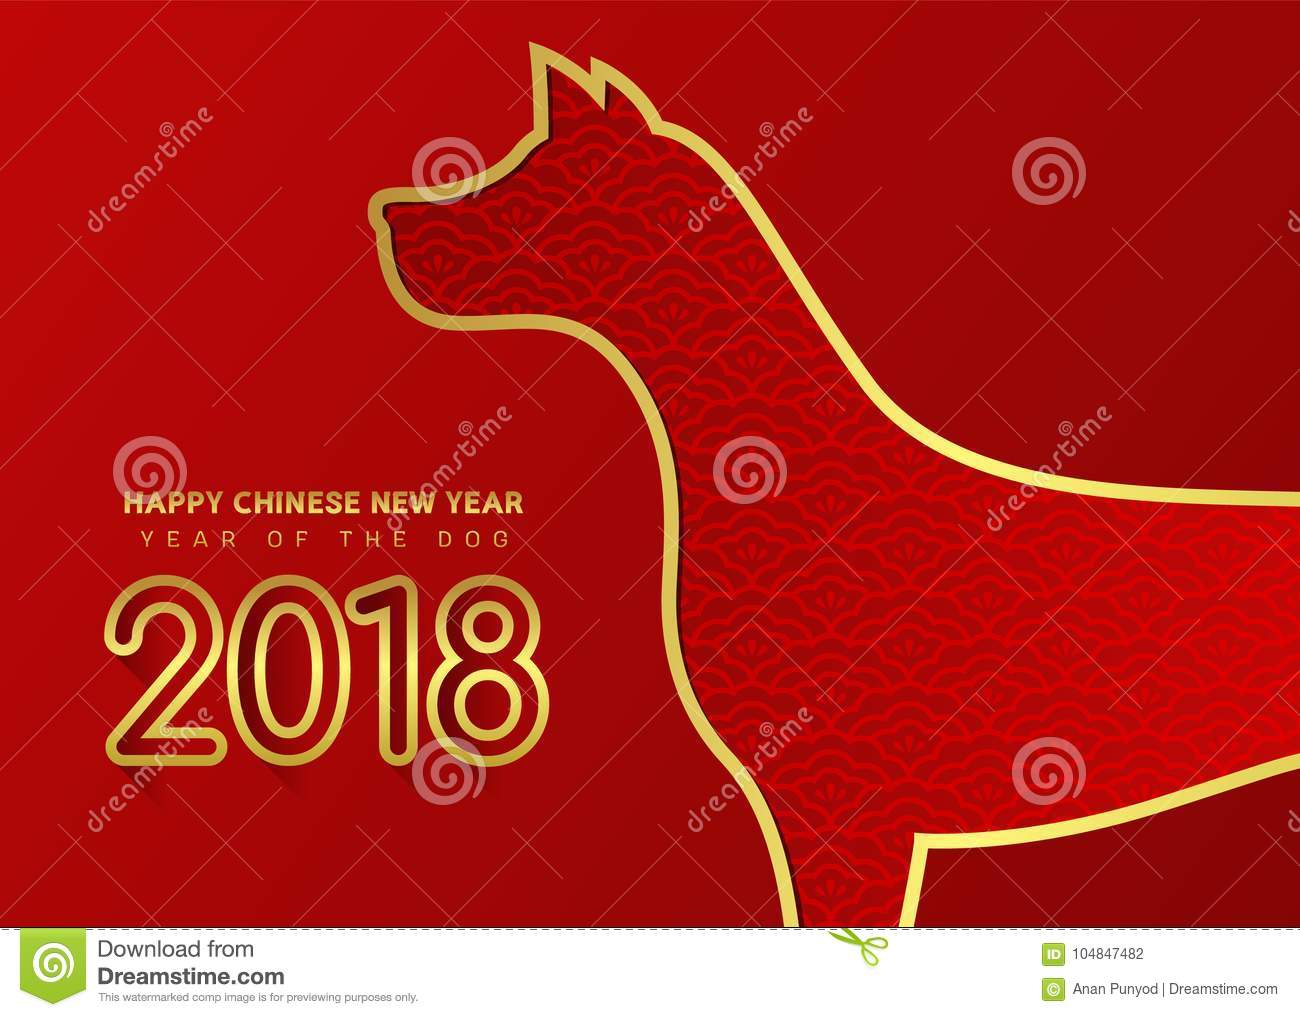 happy chinese new year 2018 card with gold border line dog zodiac sign and chinese text